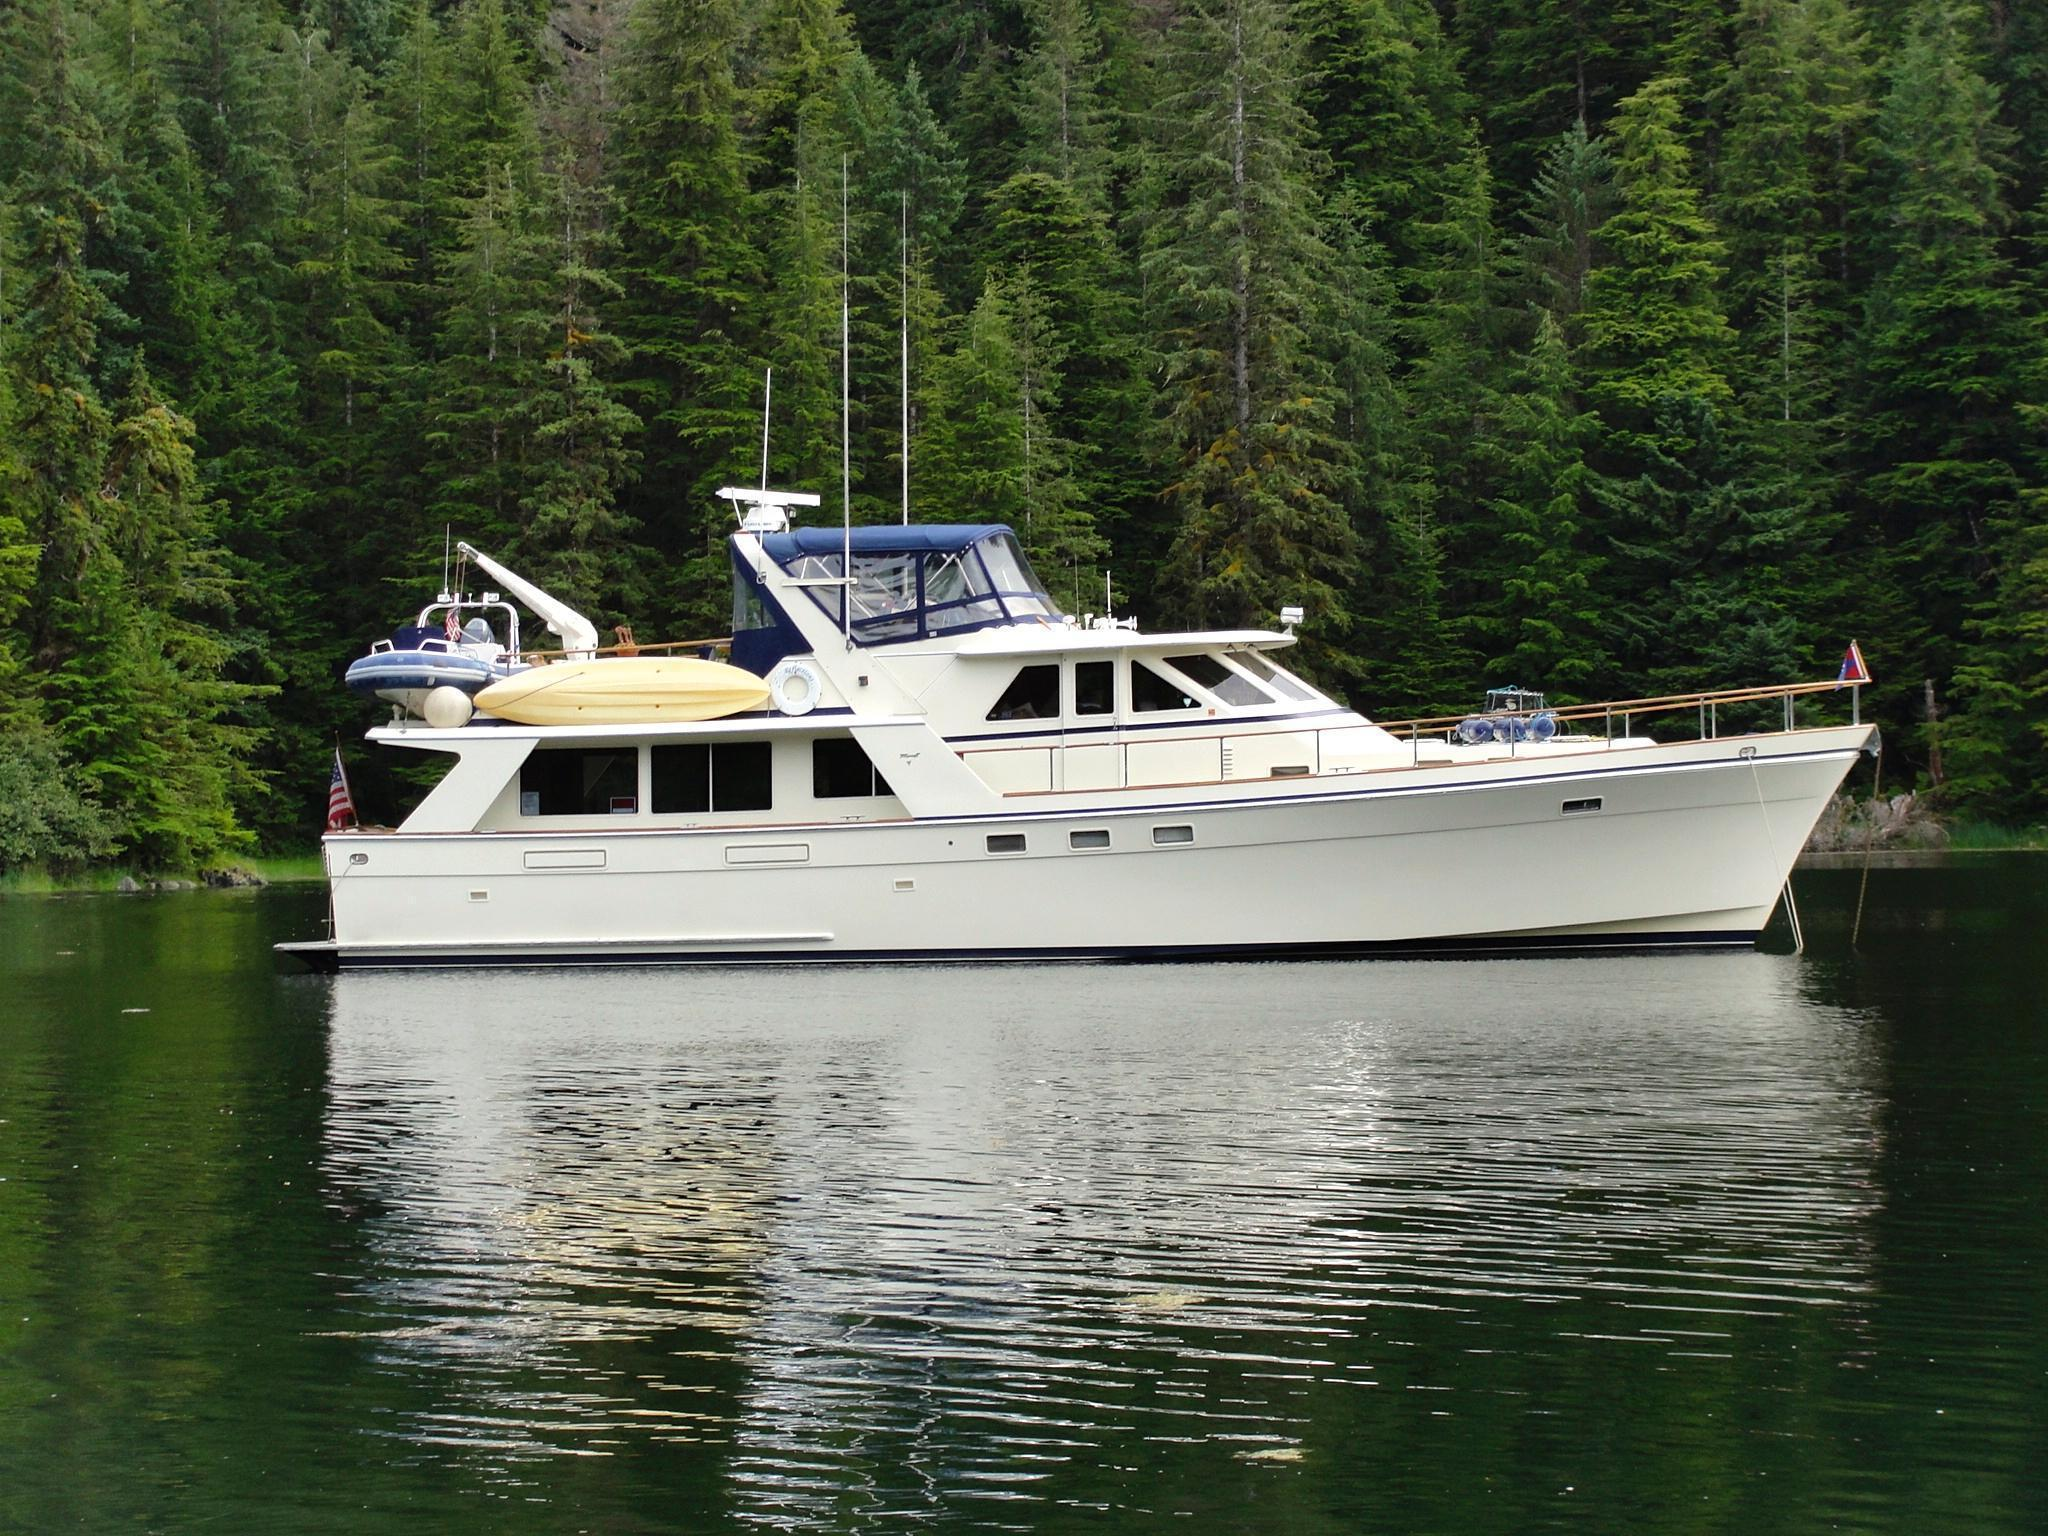 Tollycraft Pilothouse, laconner